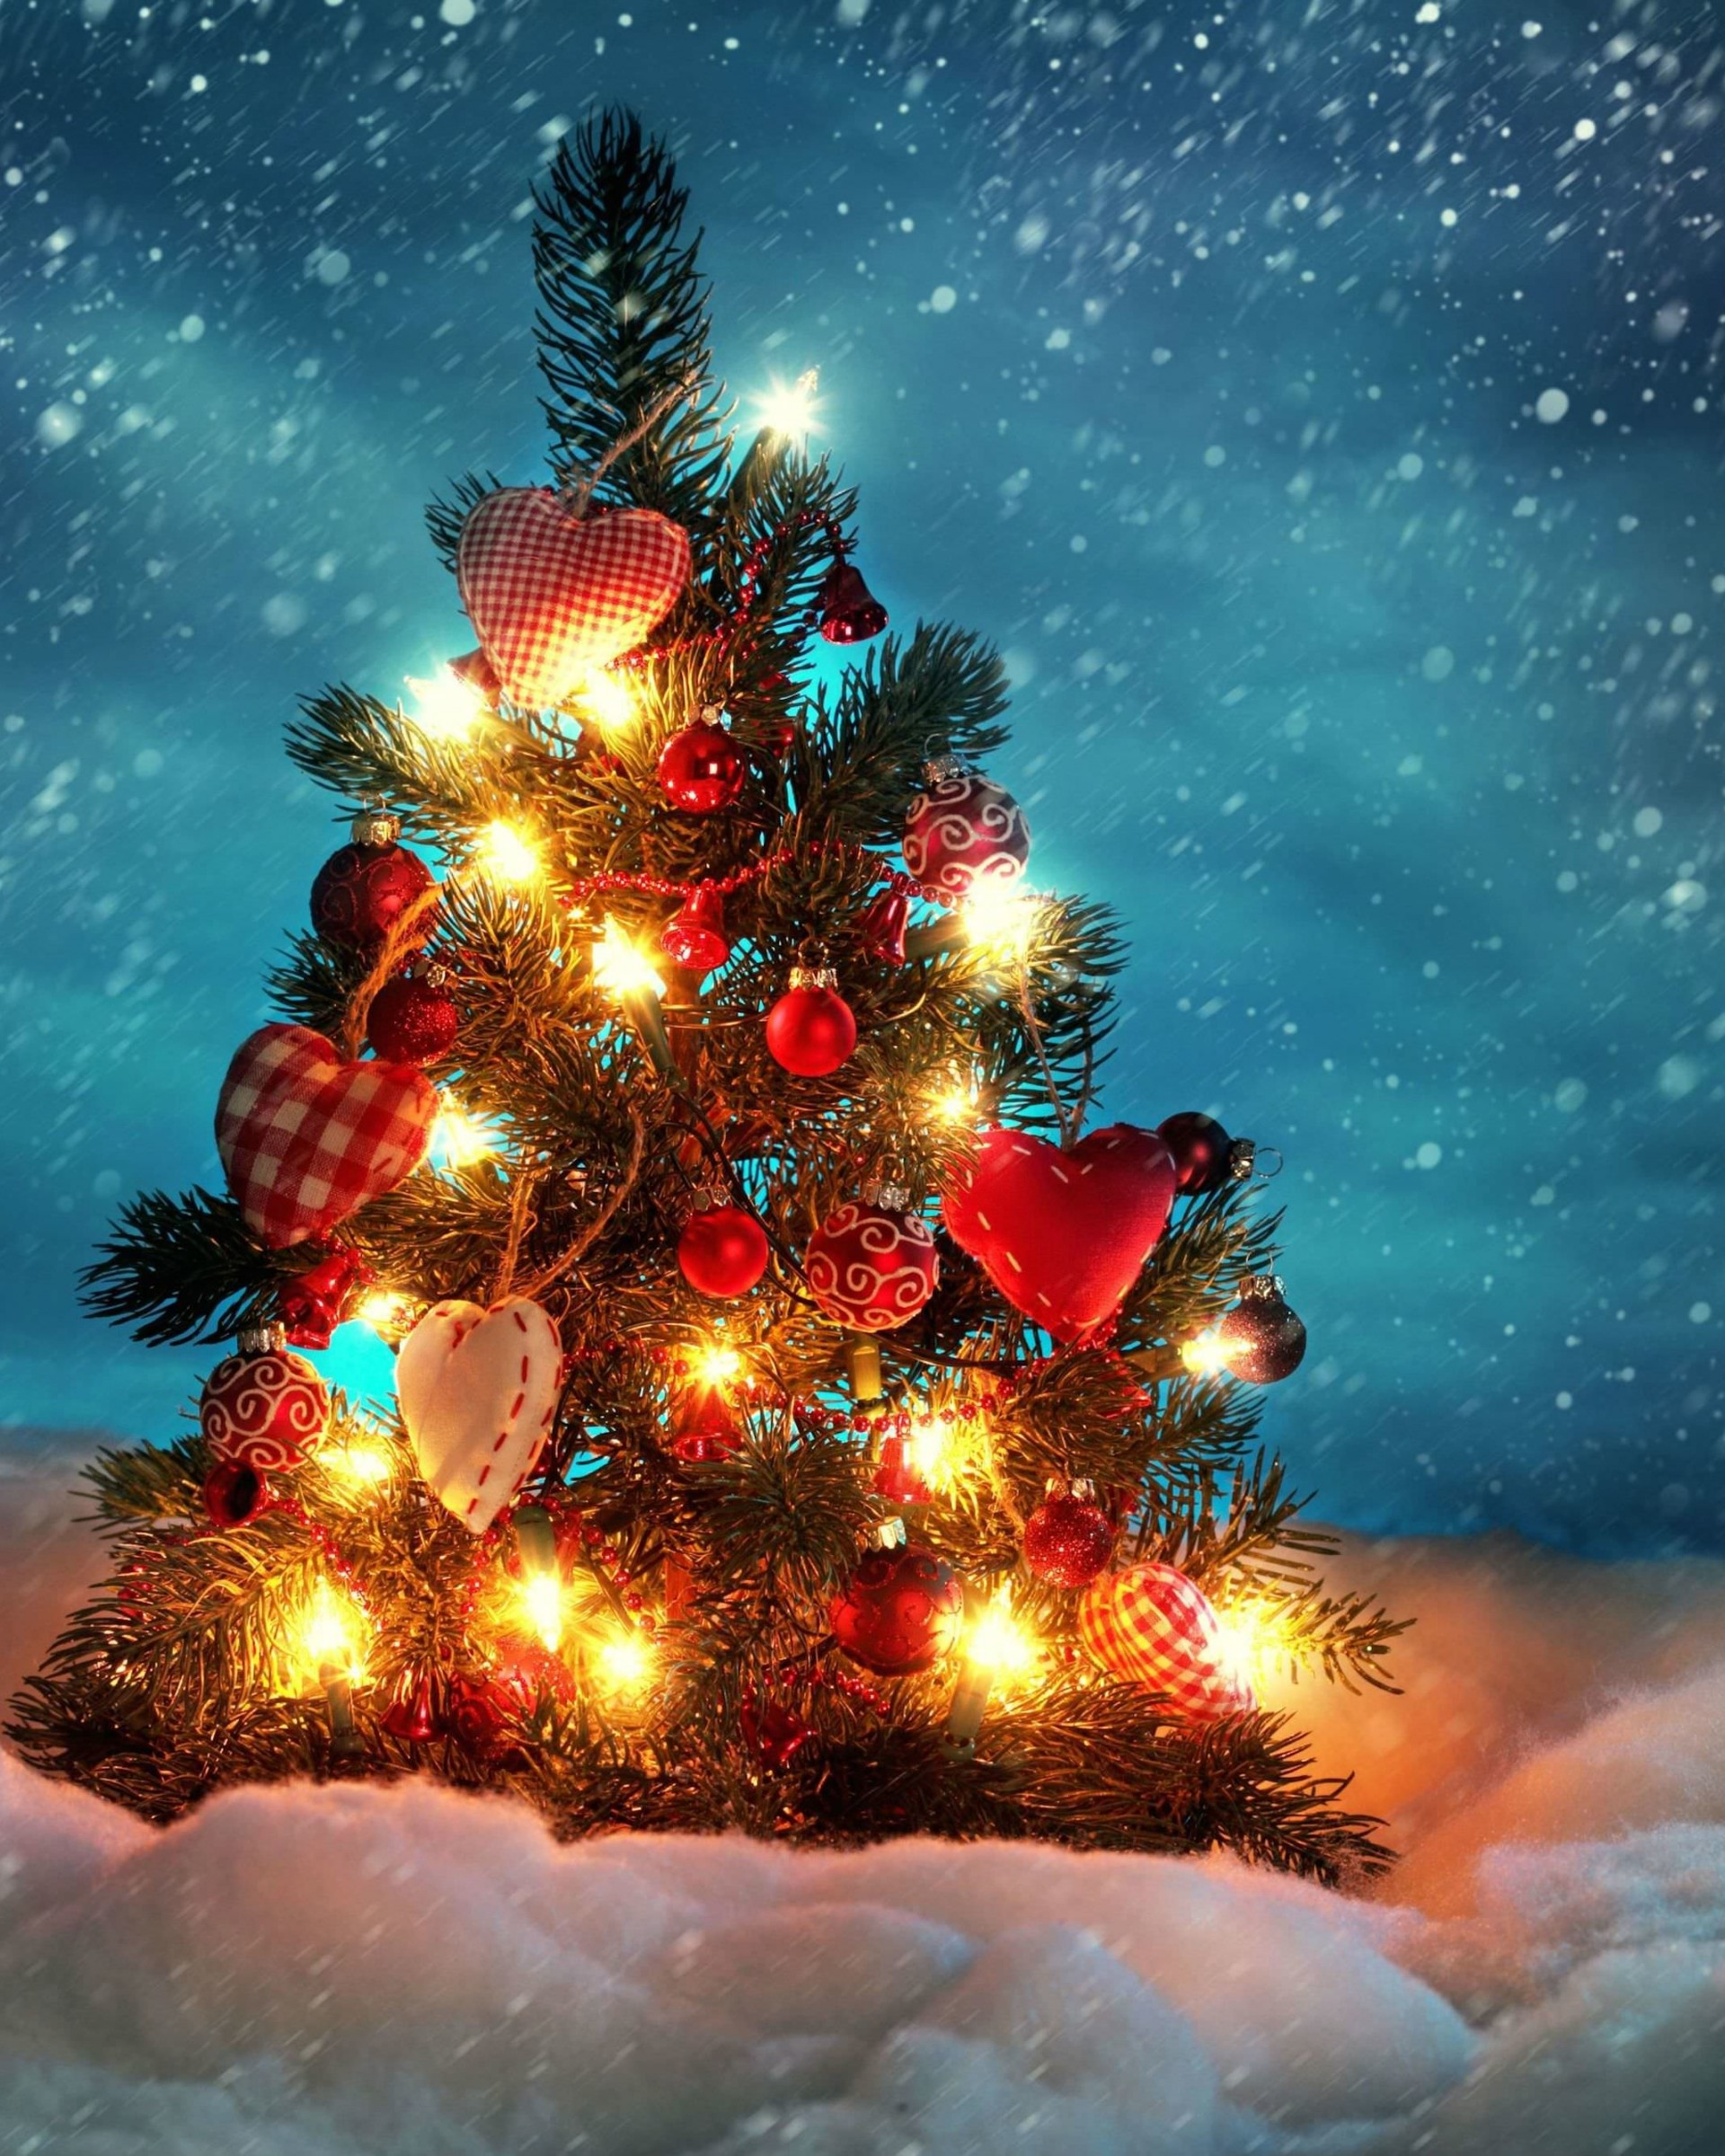 Christmas Tree Wallpaper for Google Nexus 7